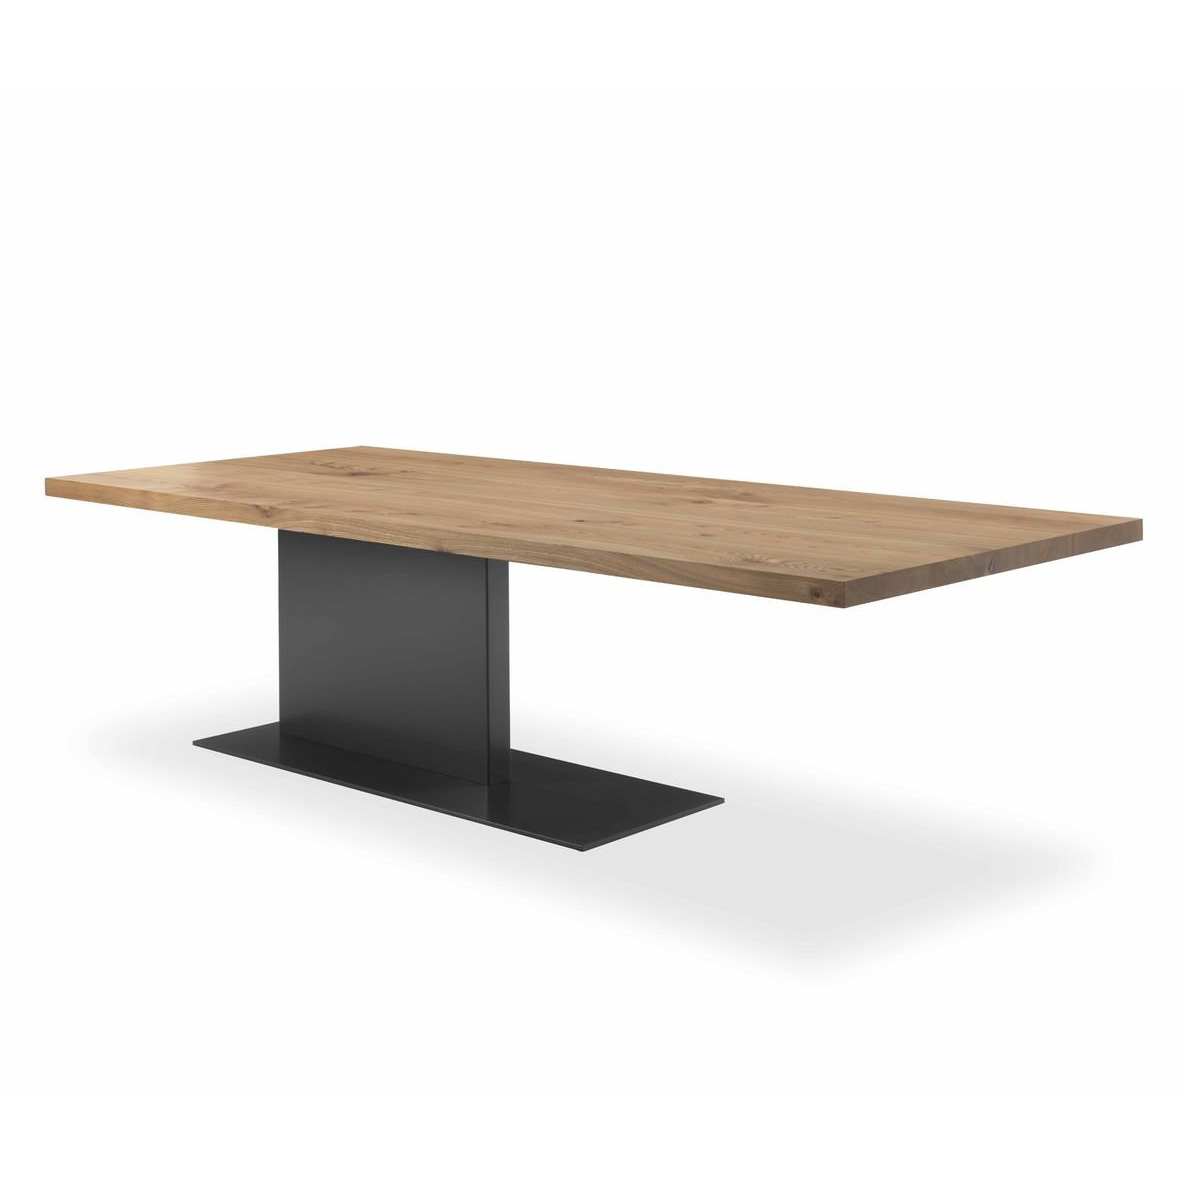 Liam Iron dining table from Riva 1920